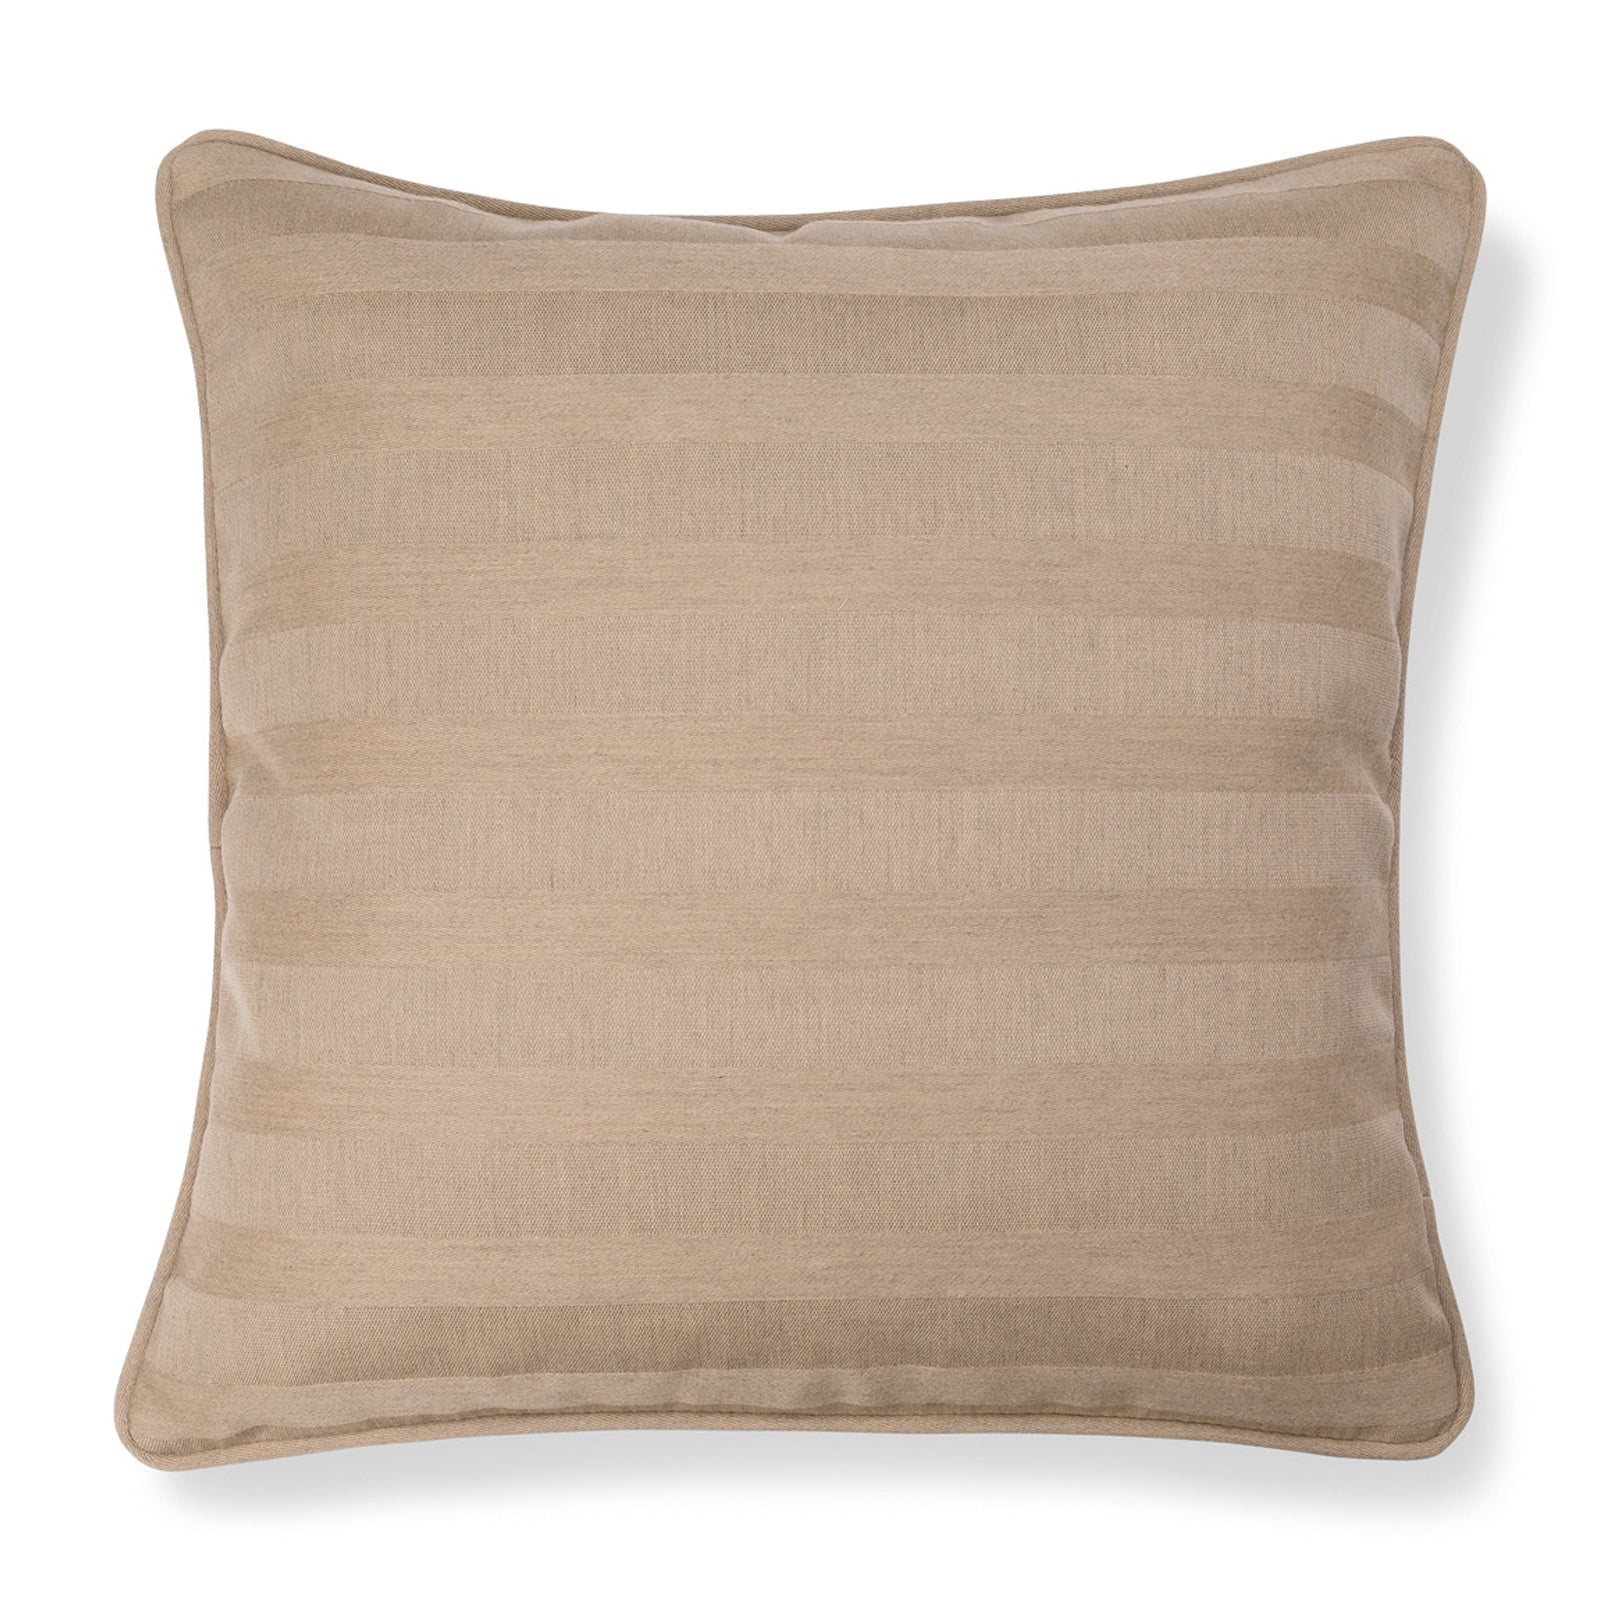 Daylight Outdoor Cushion